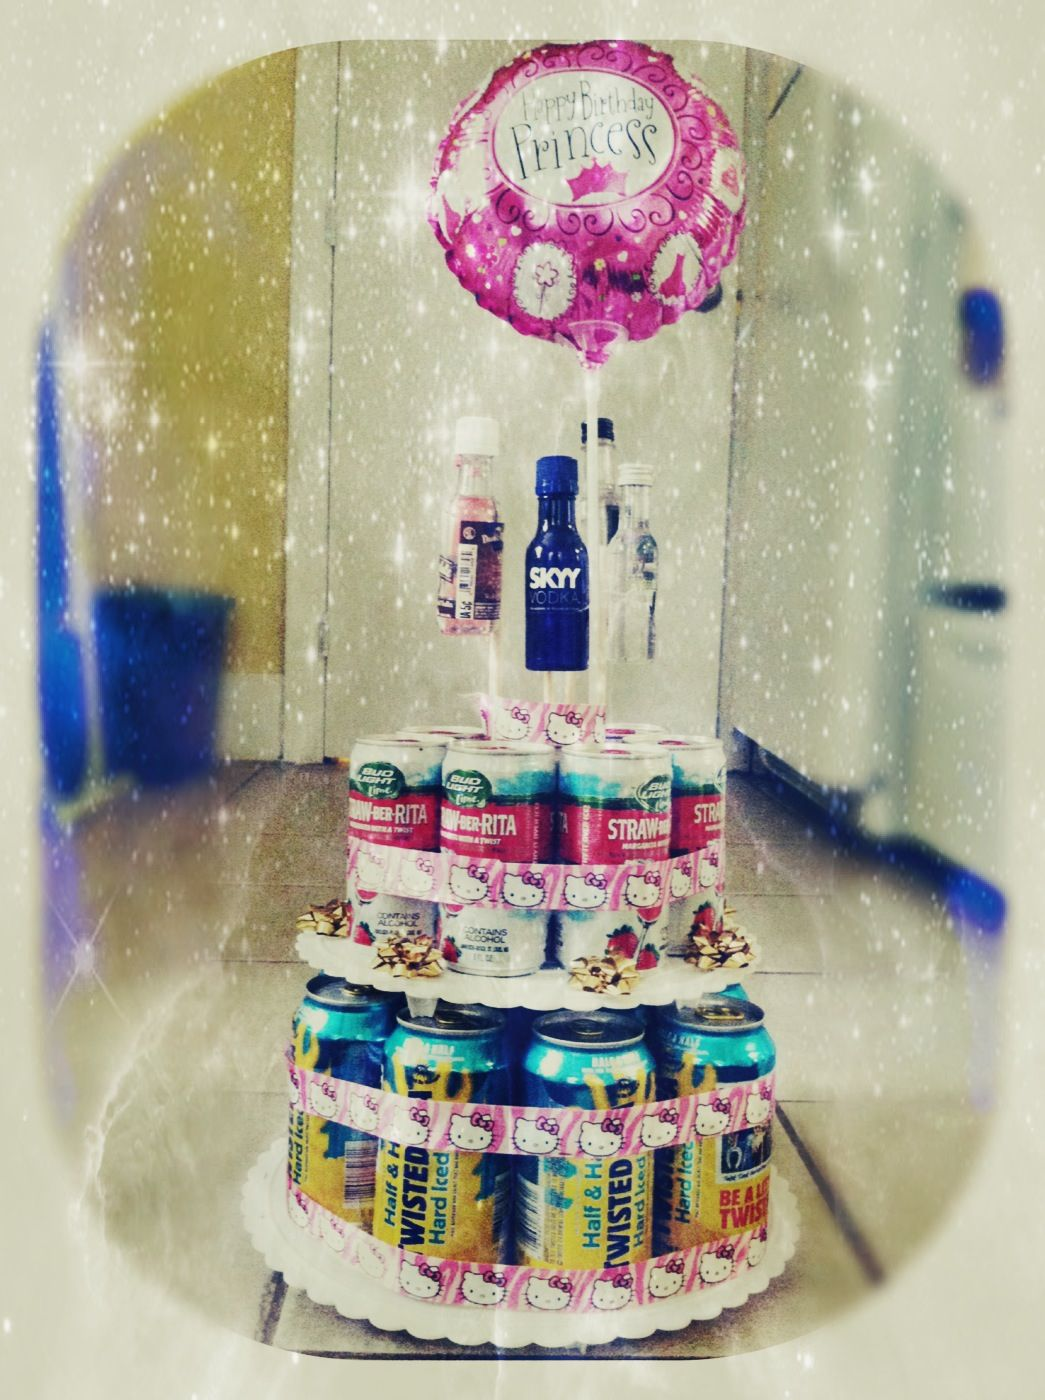 DIY Beer Cake Unique 21st Birthday Present